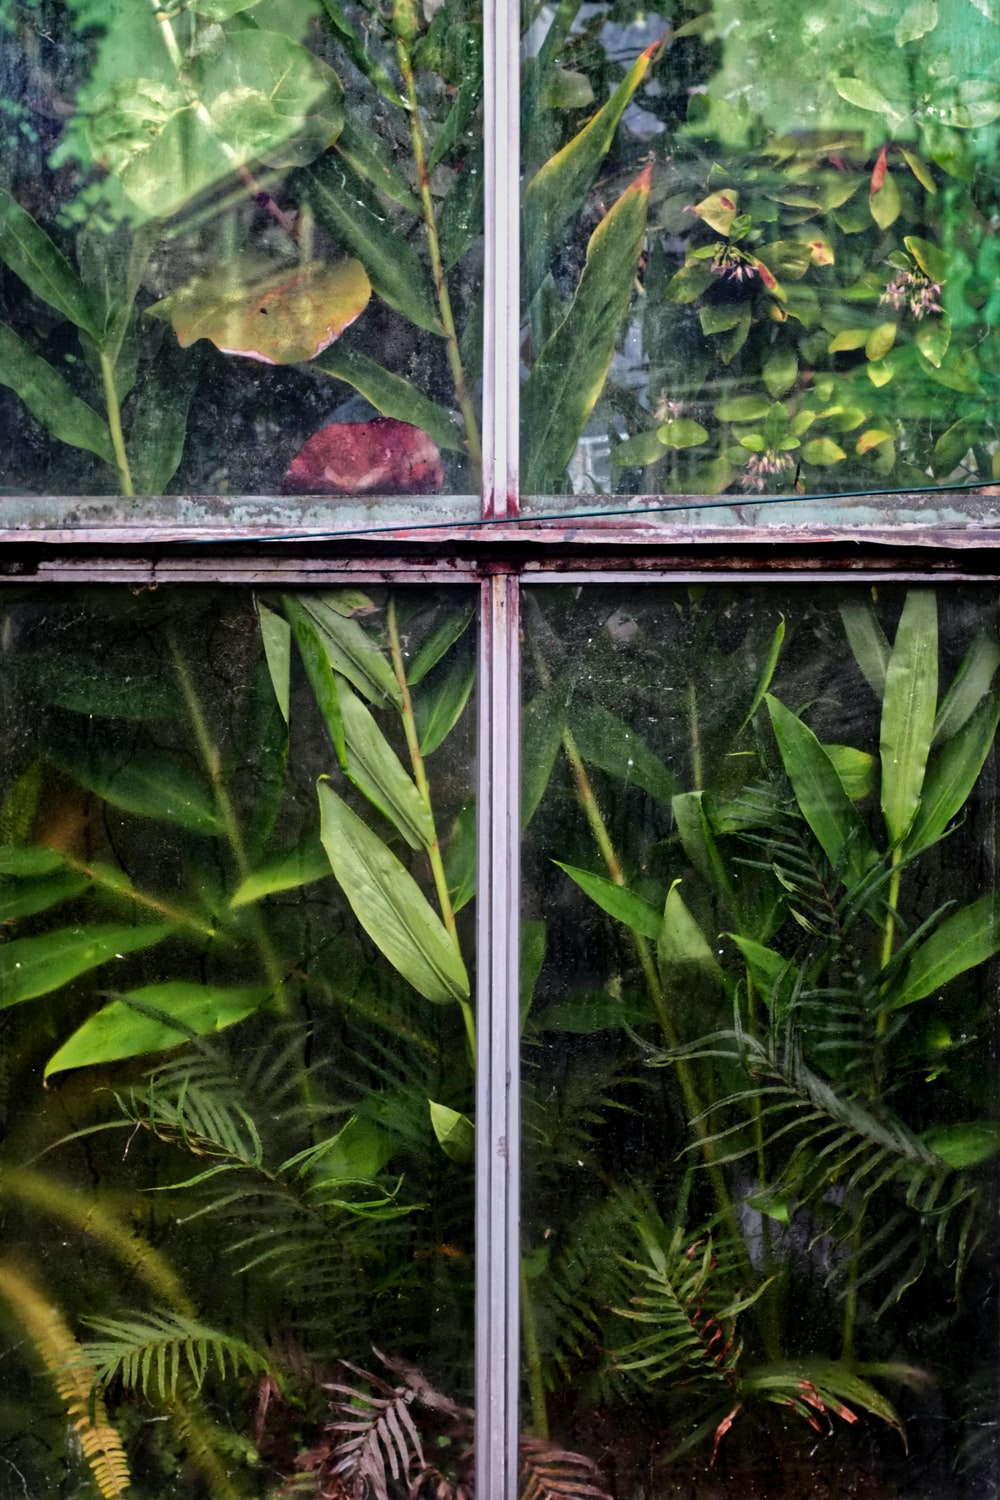 plants behind window